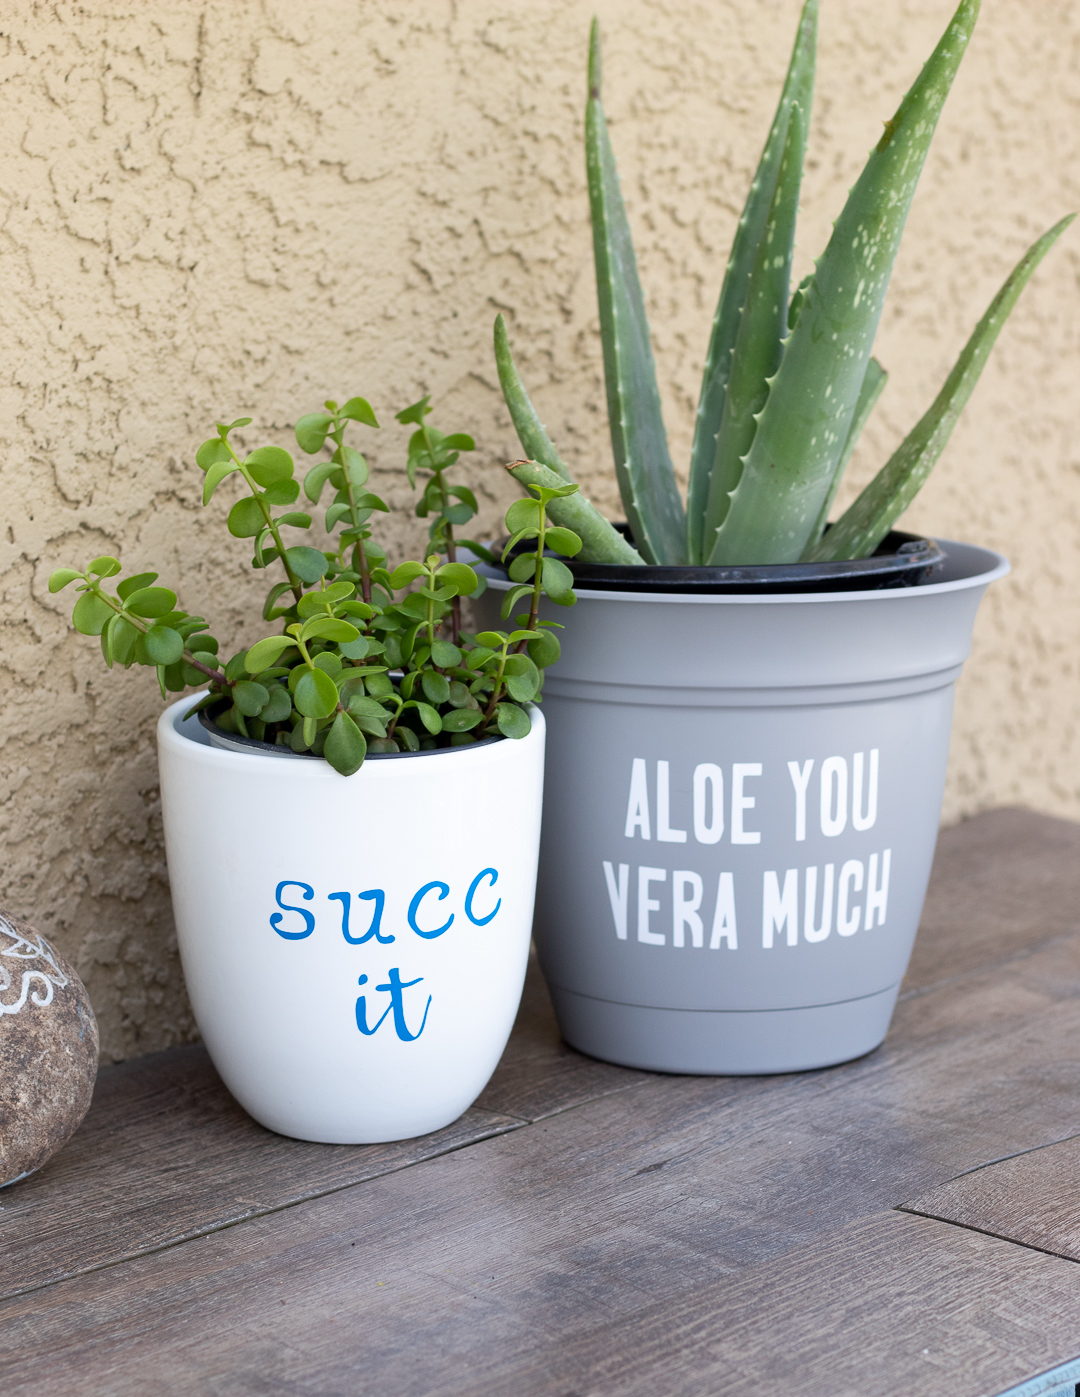 cricut garden ideas